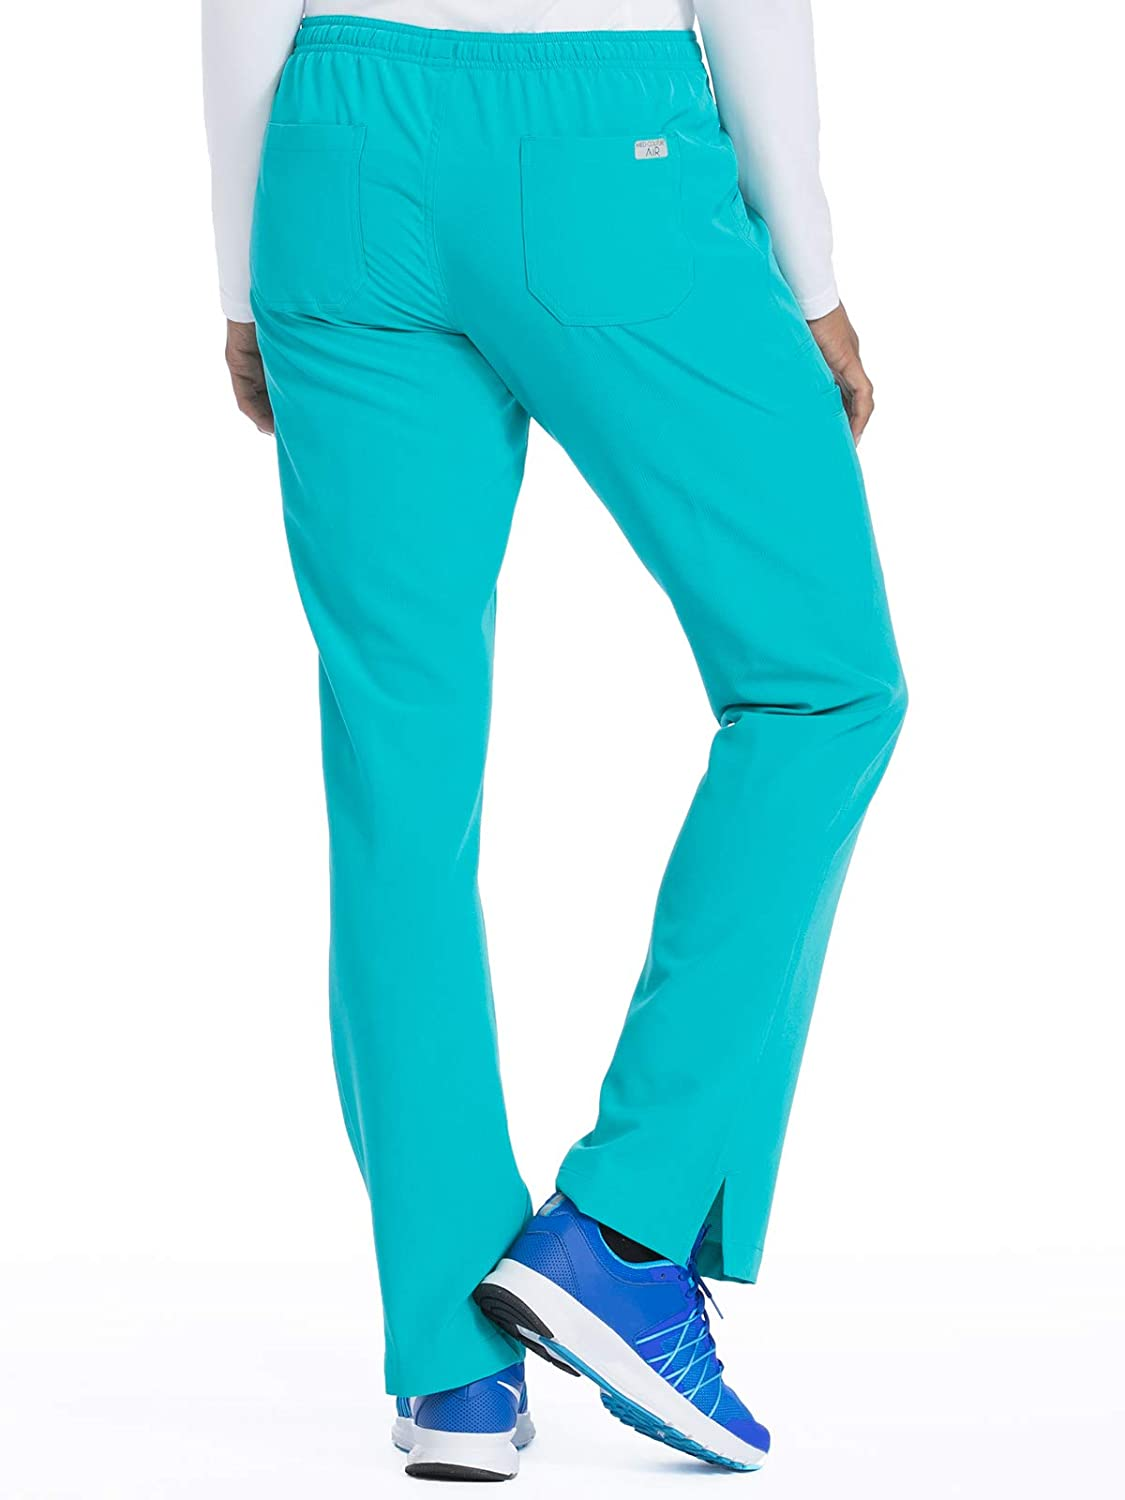 91b138f6094 Amazon.com: Med Couture Women's 'Air Collection' Cloud 9 Scrub Pant:  Clothing